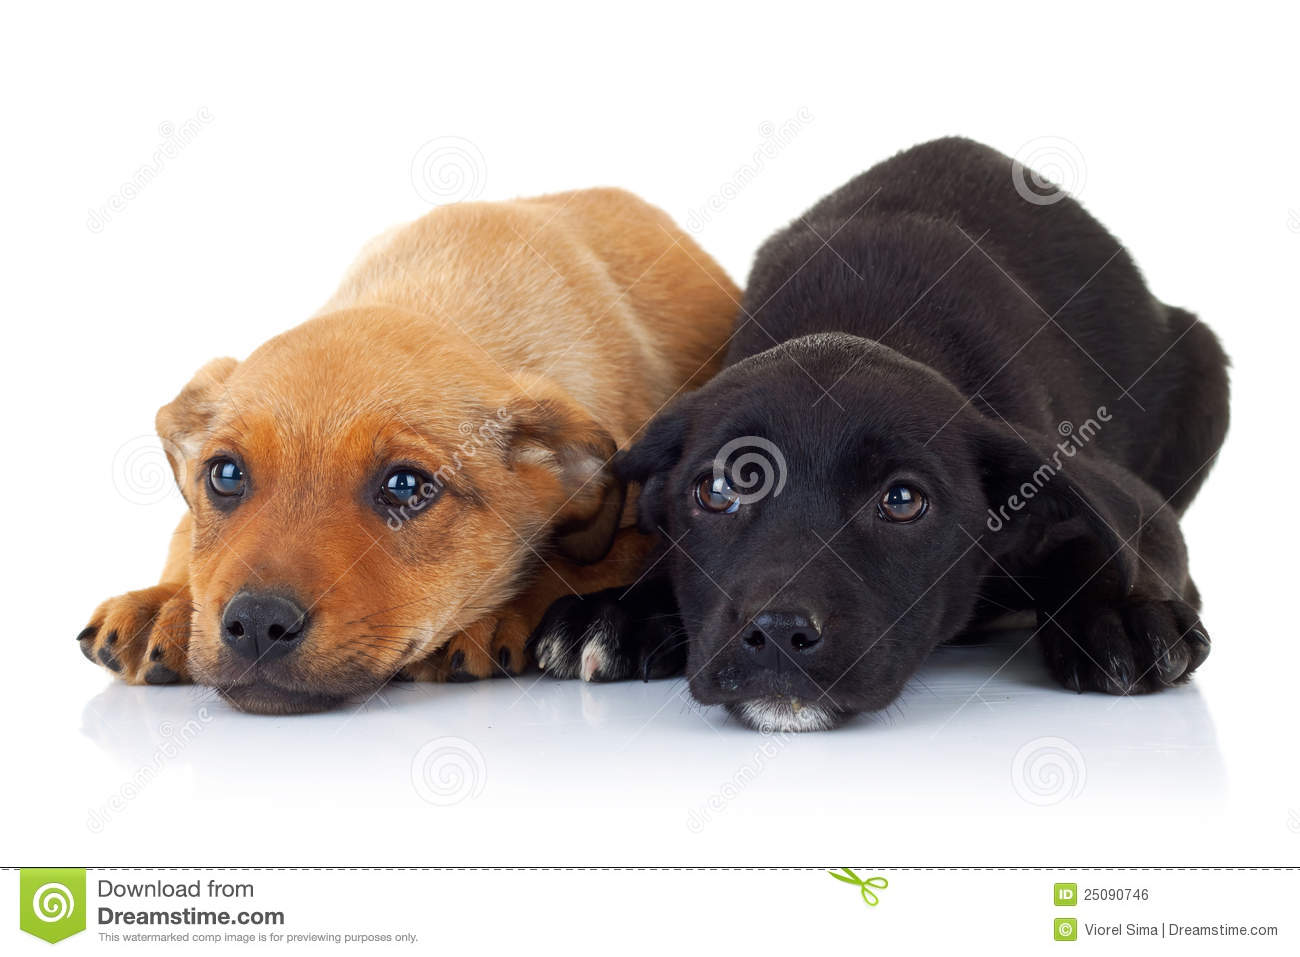 Sad Faces Of Two Stray Puppy Dogs Stock Photo - Image ...